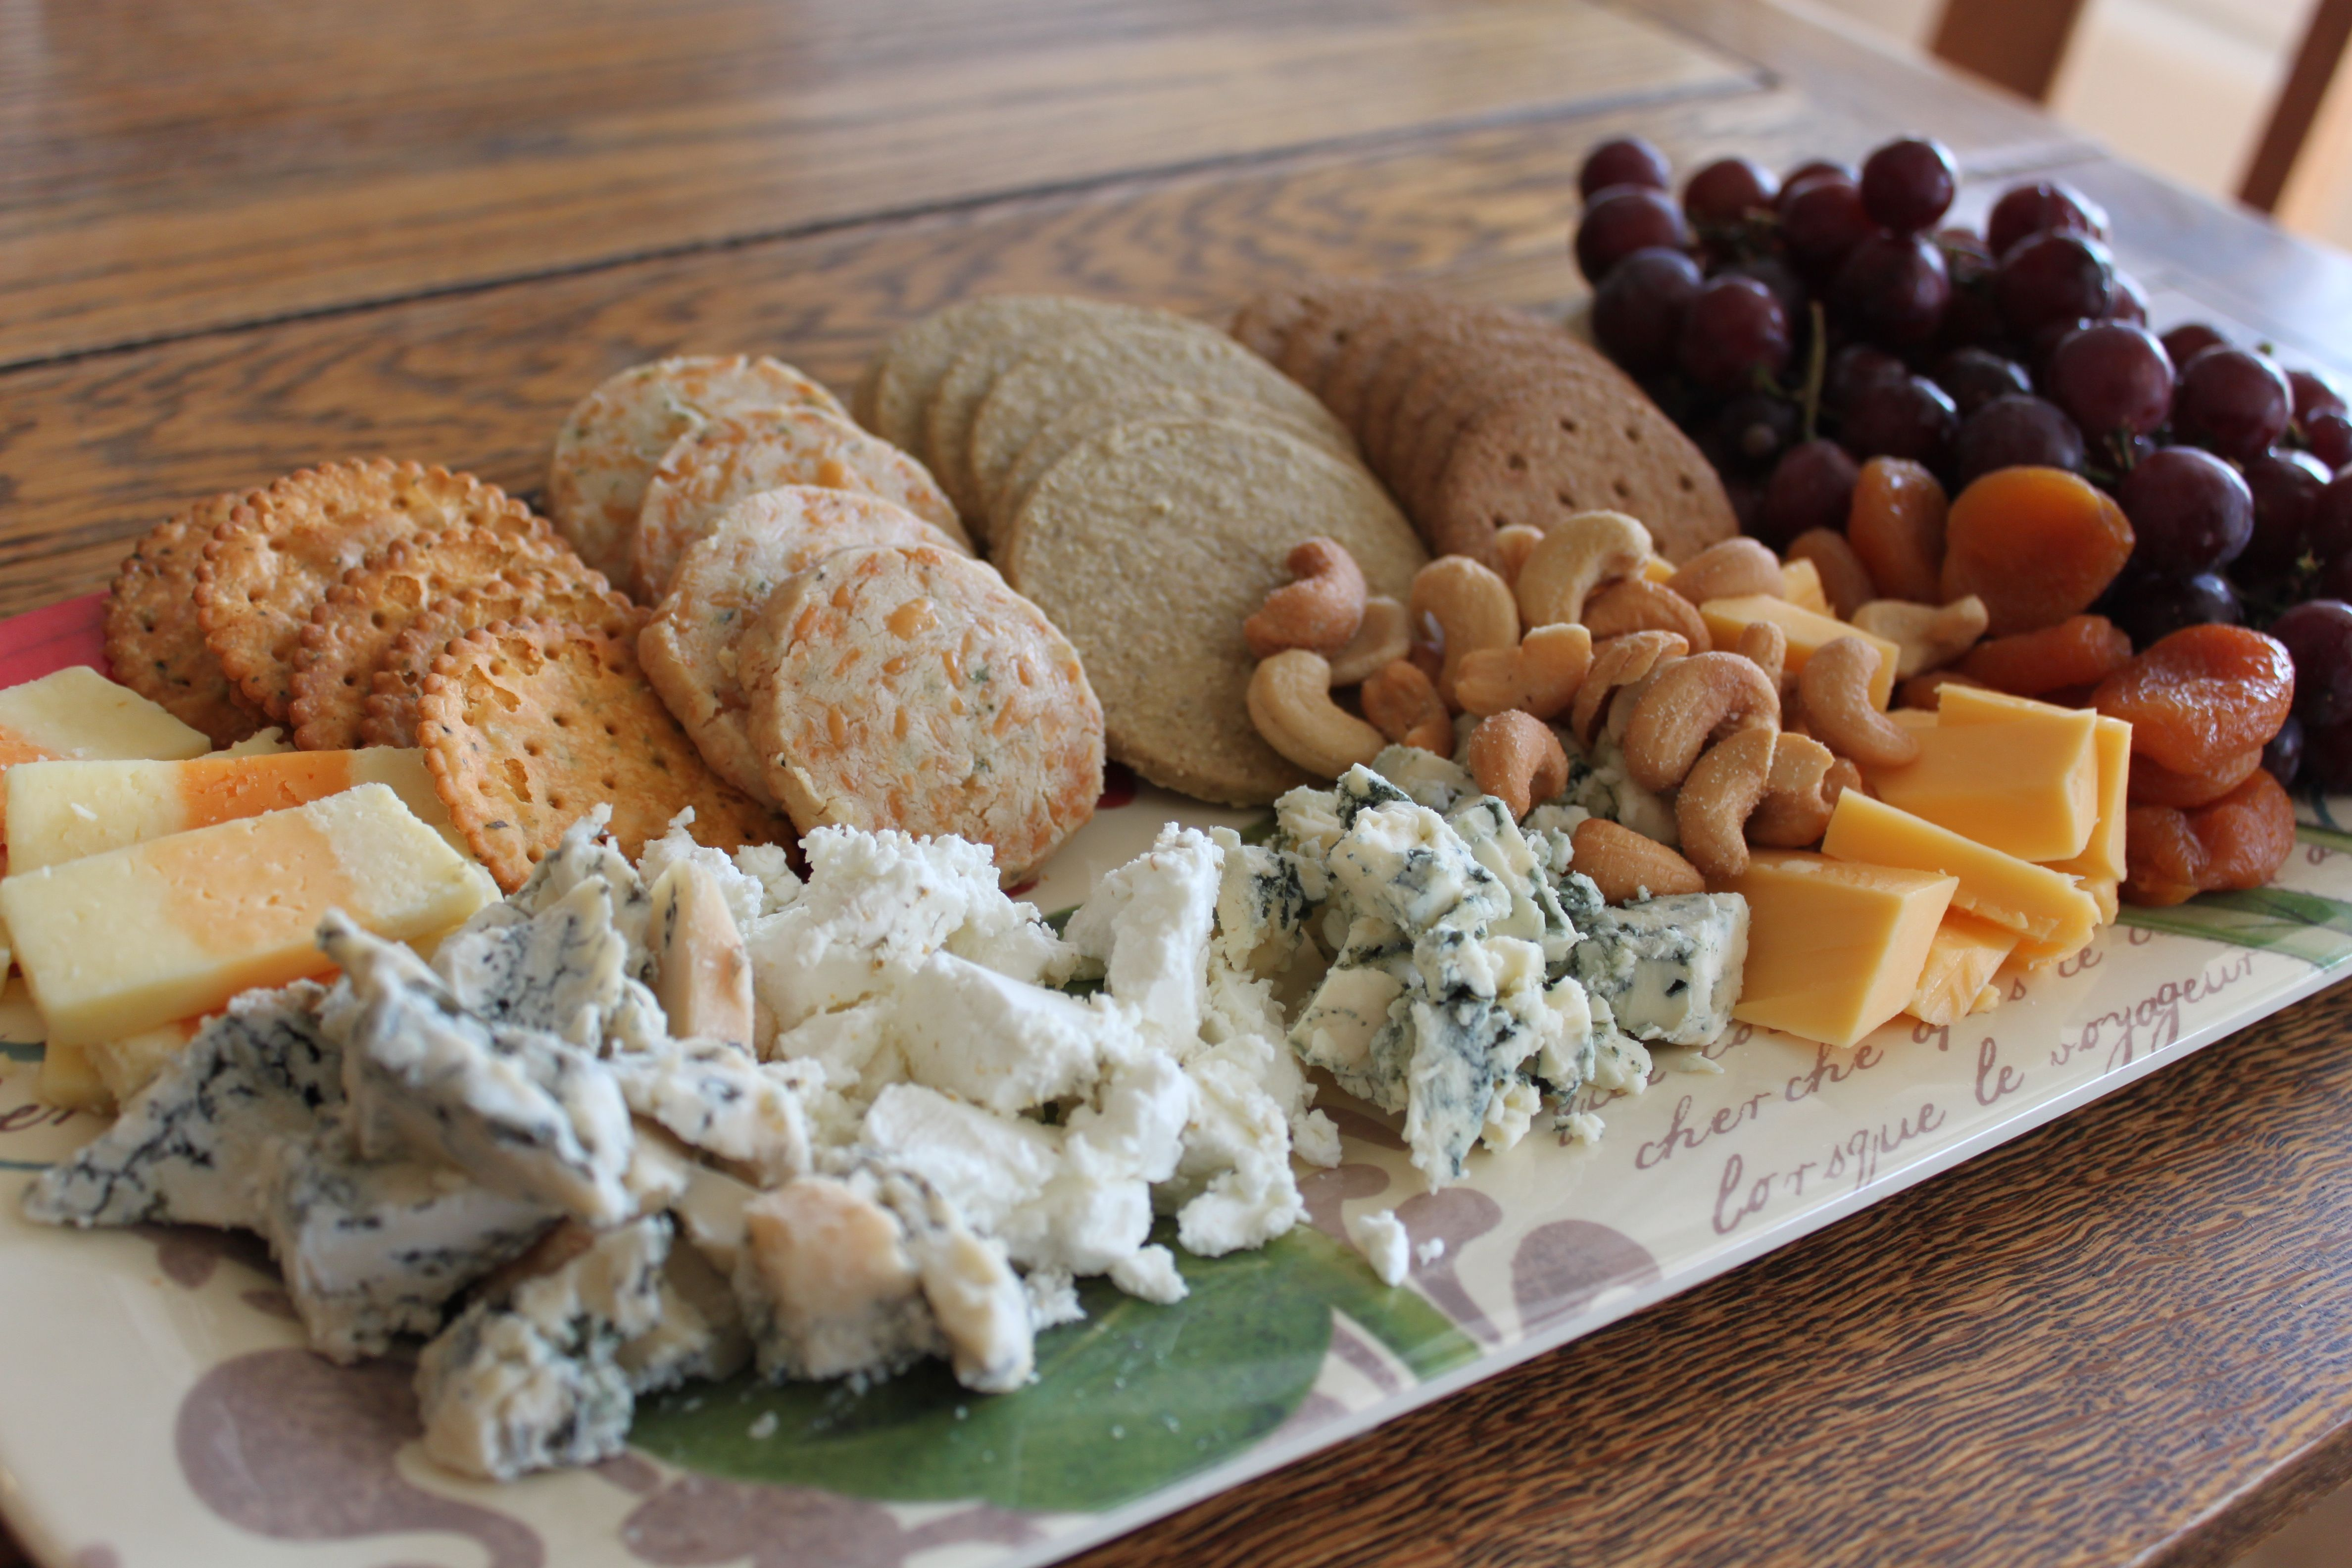 Cheese Platter Ina Garten - Yahoo Image Search Results & Cheese Platter Ina Garten - Yahoo Image Search Results | Ina garten ...